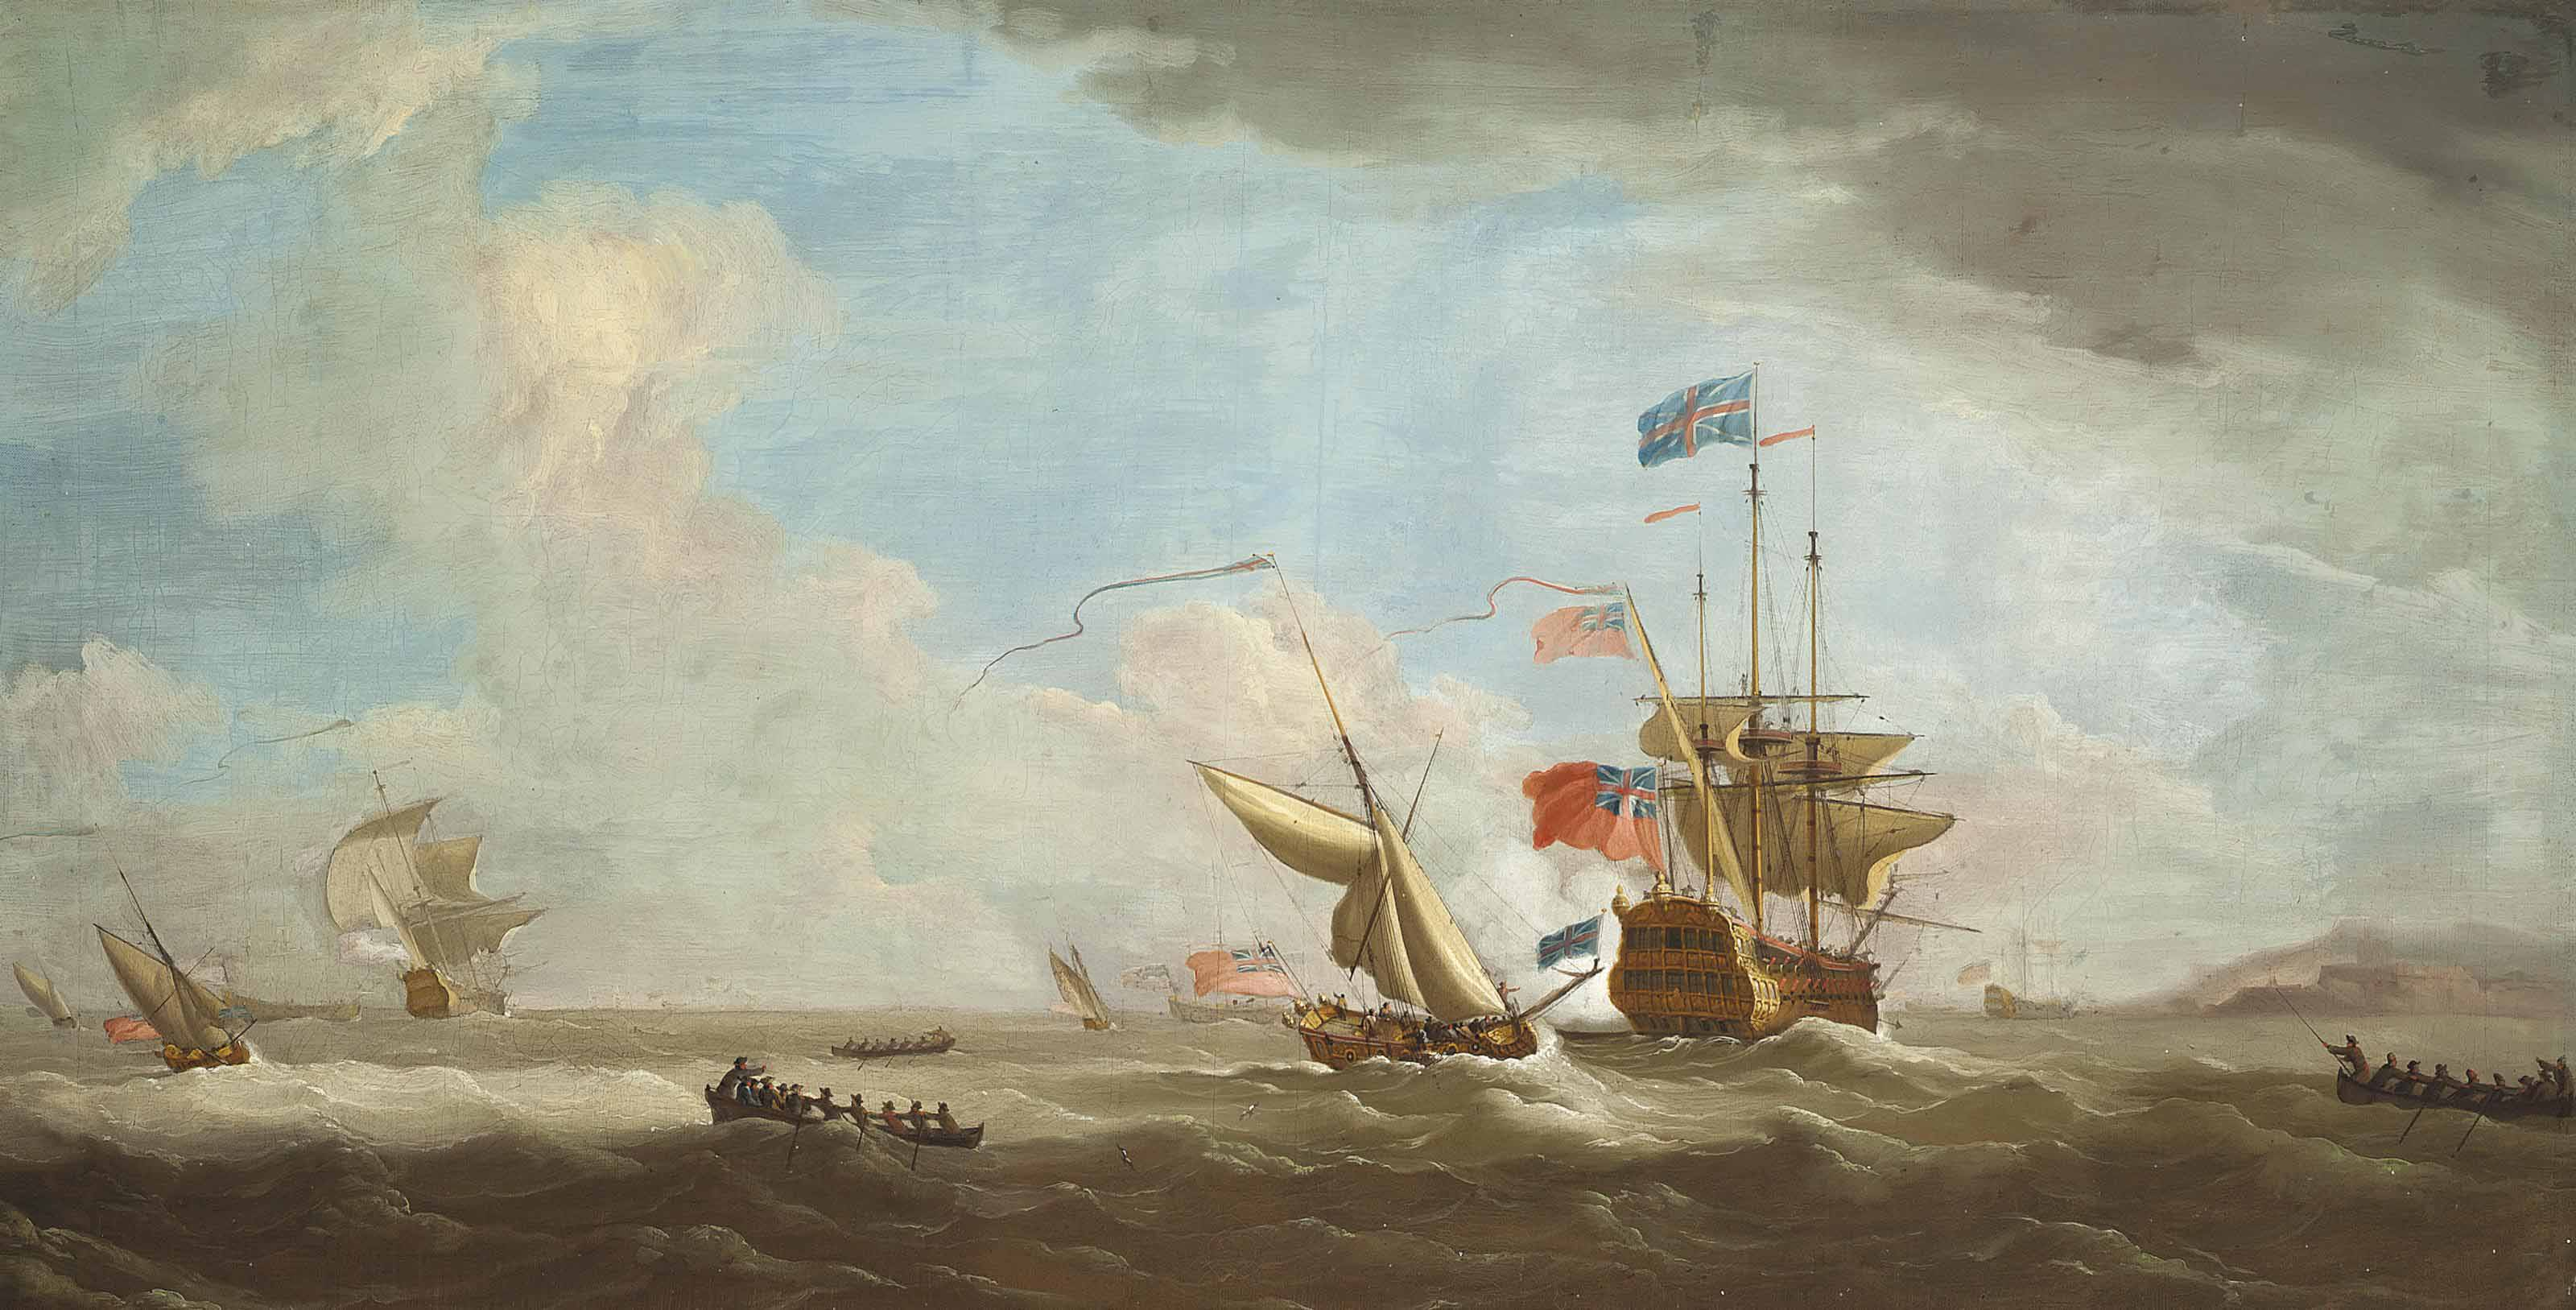 Ships of the fleet in a stiff breeze off the coast, the flagship of the Red Squadron heaving-to ahead of an approaching Admiralty yacht